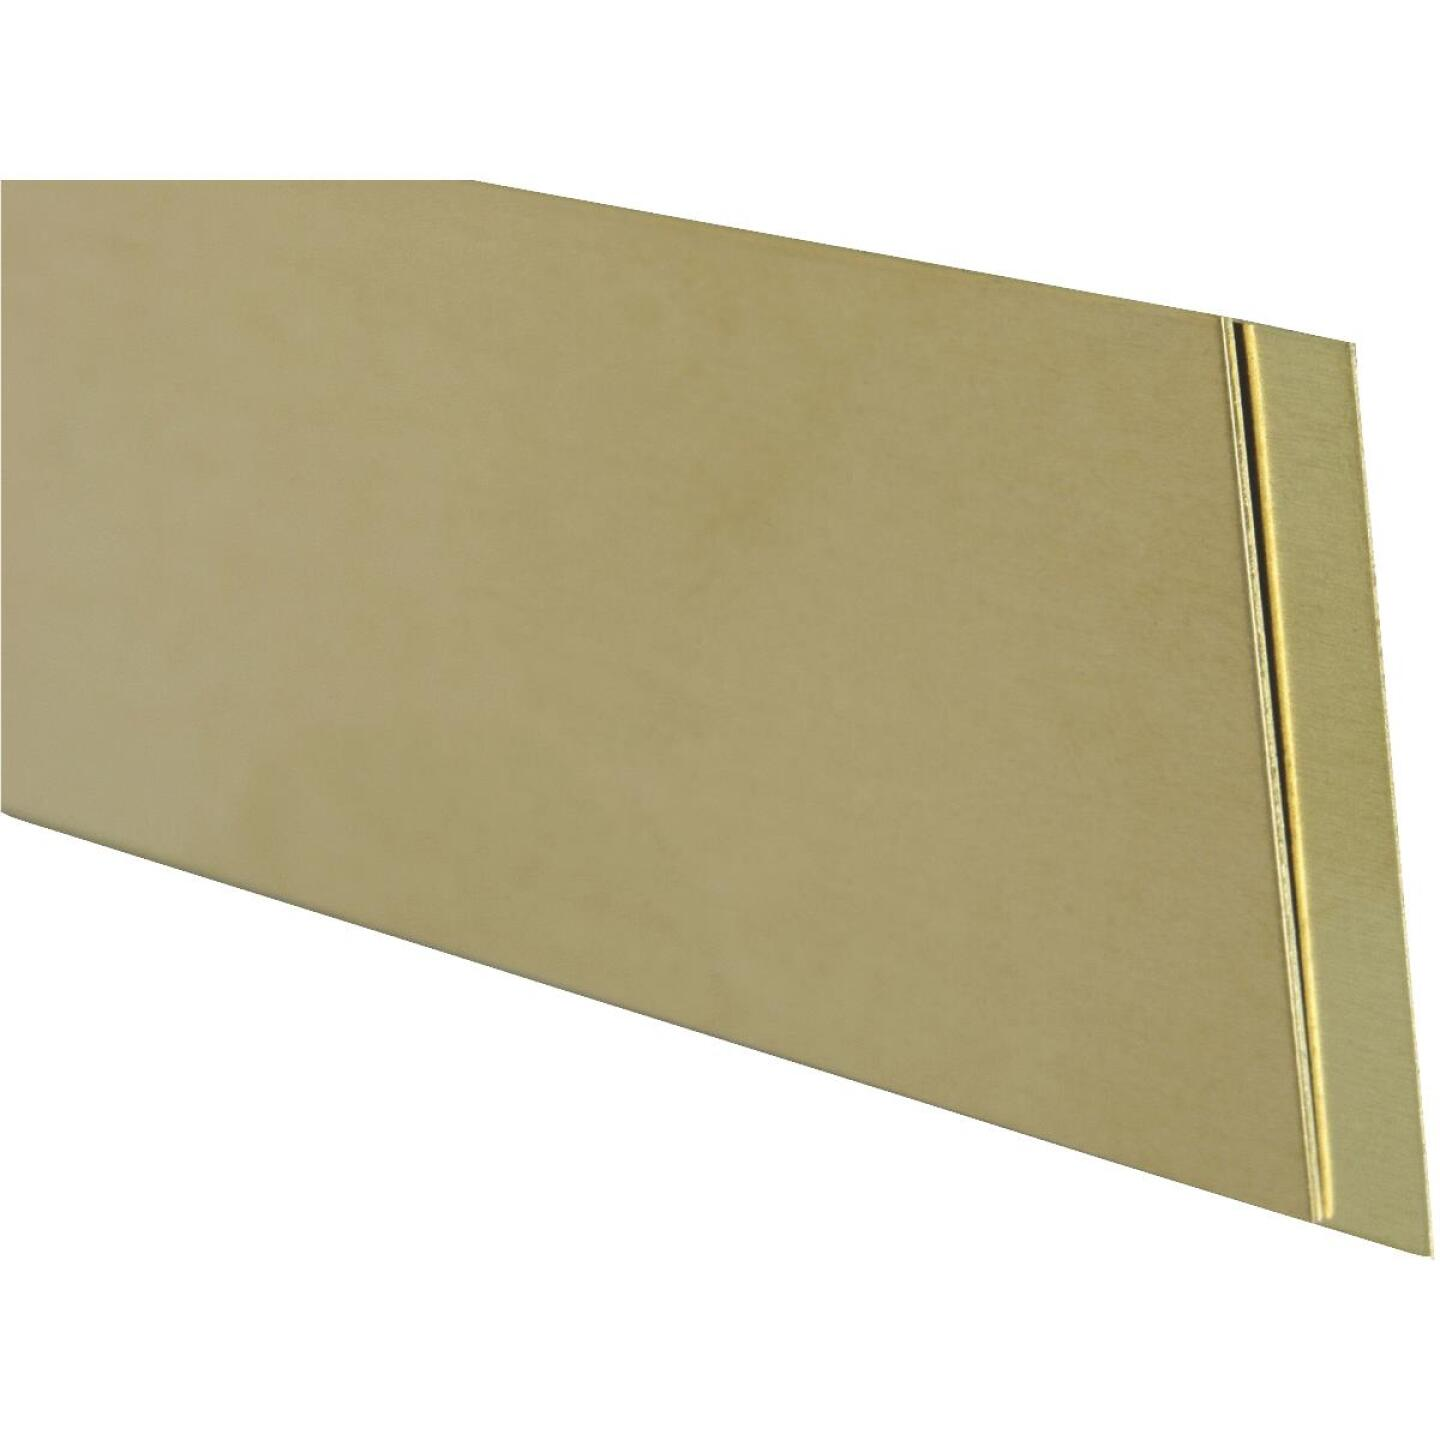 K&S Brass 1/4 In. x 12 In. Strip Stock Image 1